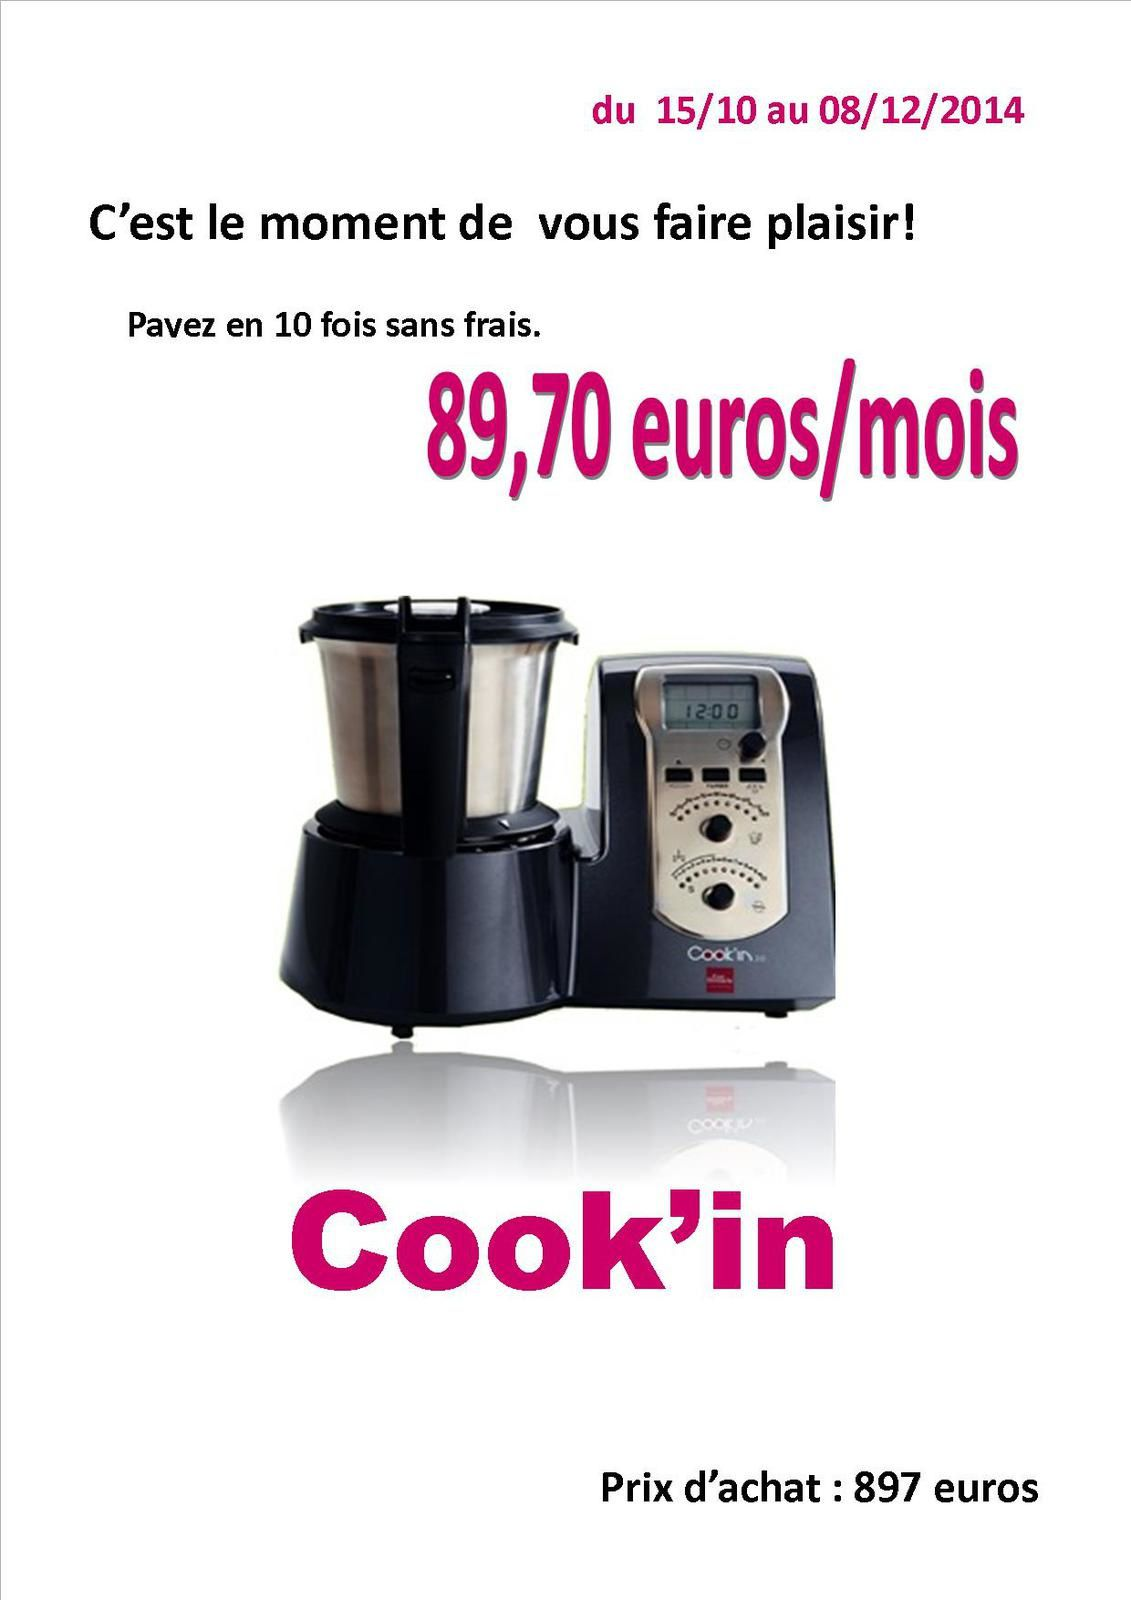 PATES DE COINGS AU COOK'IN